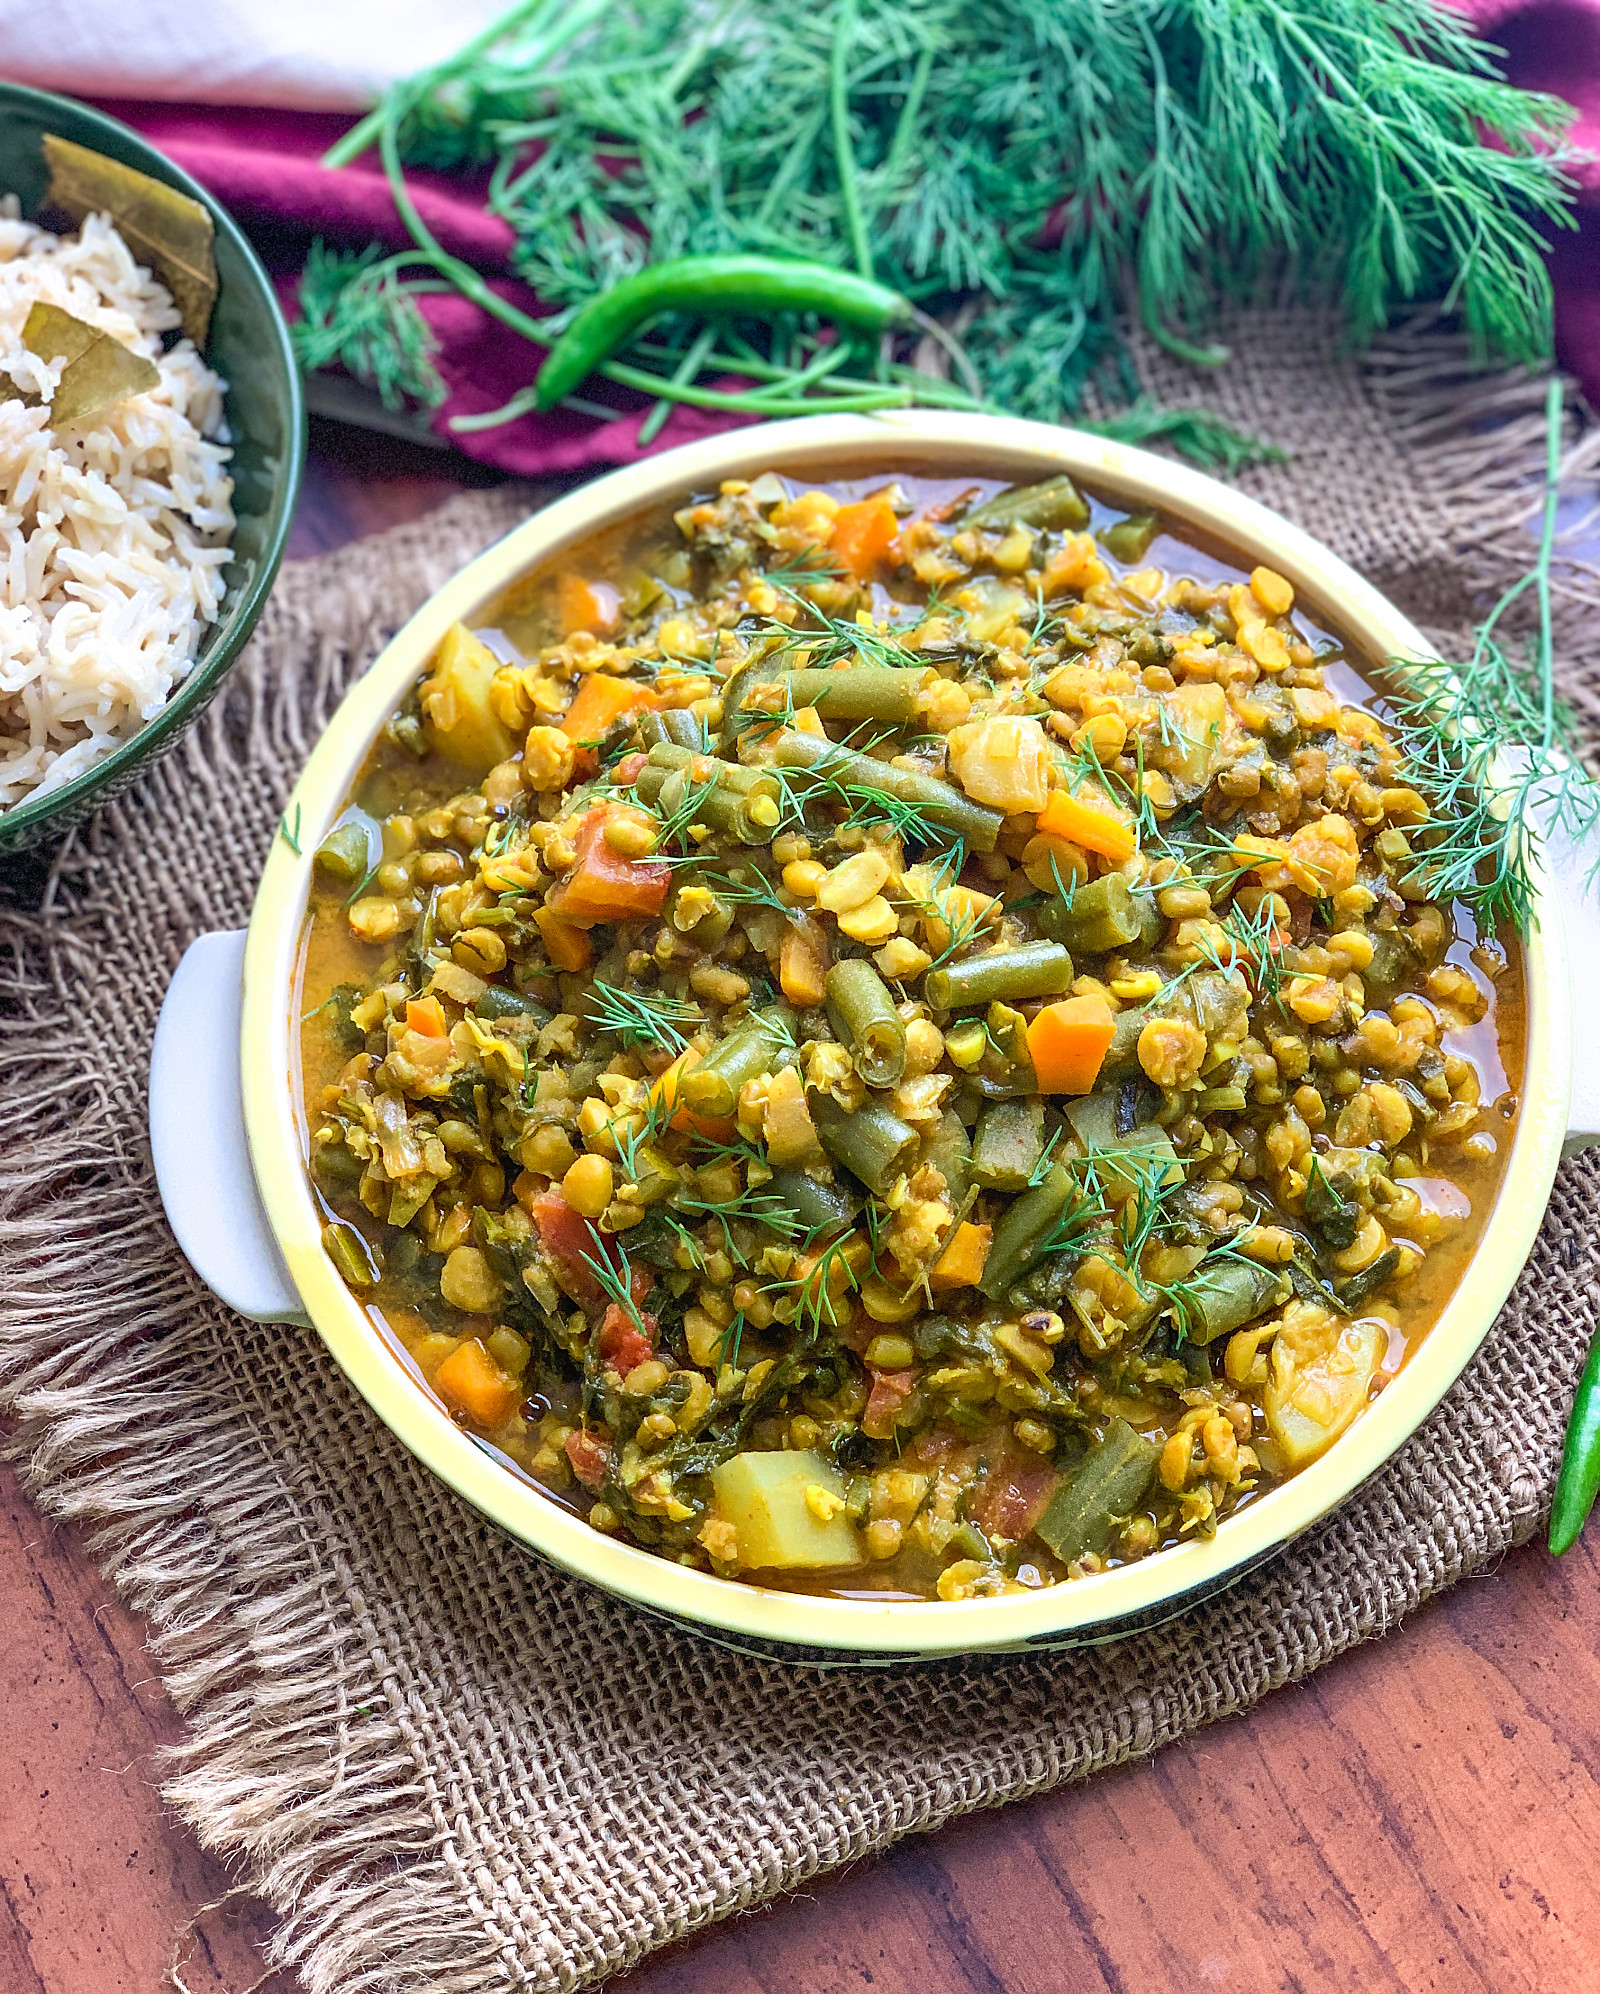 Sindhi Sai Bhaji Recipe - Wholesome Sindhi Dal With Vegetables